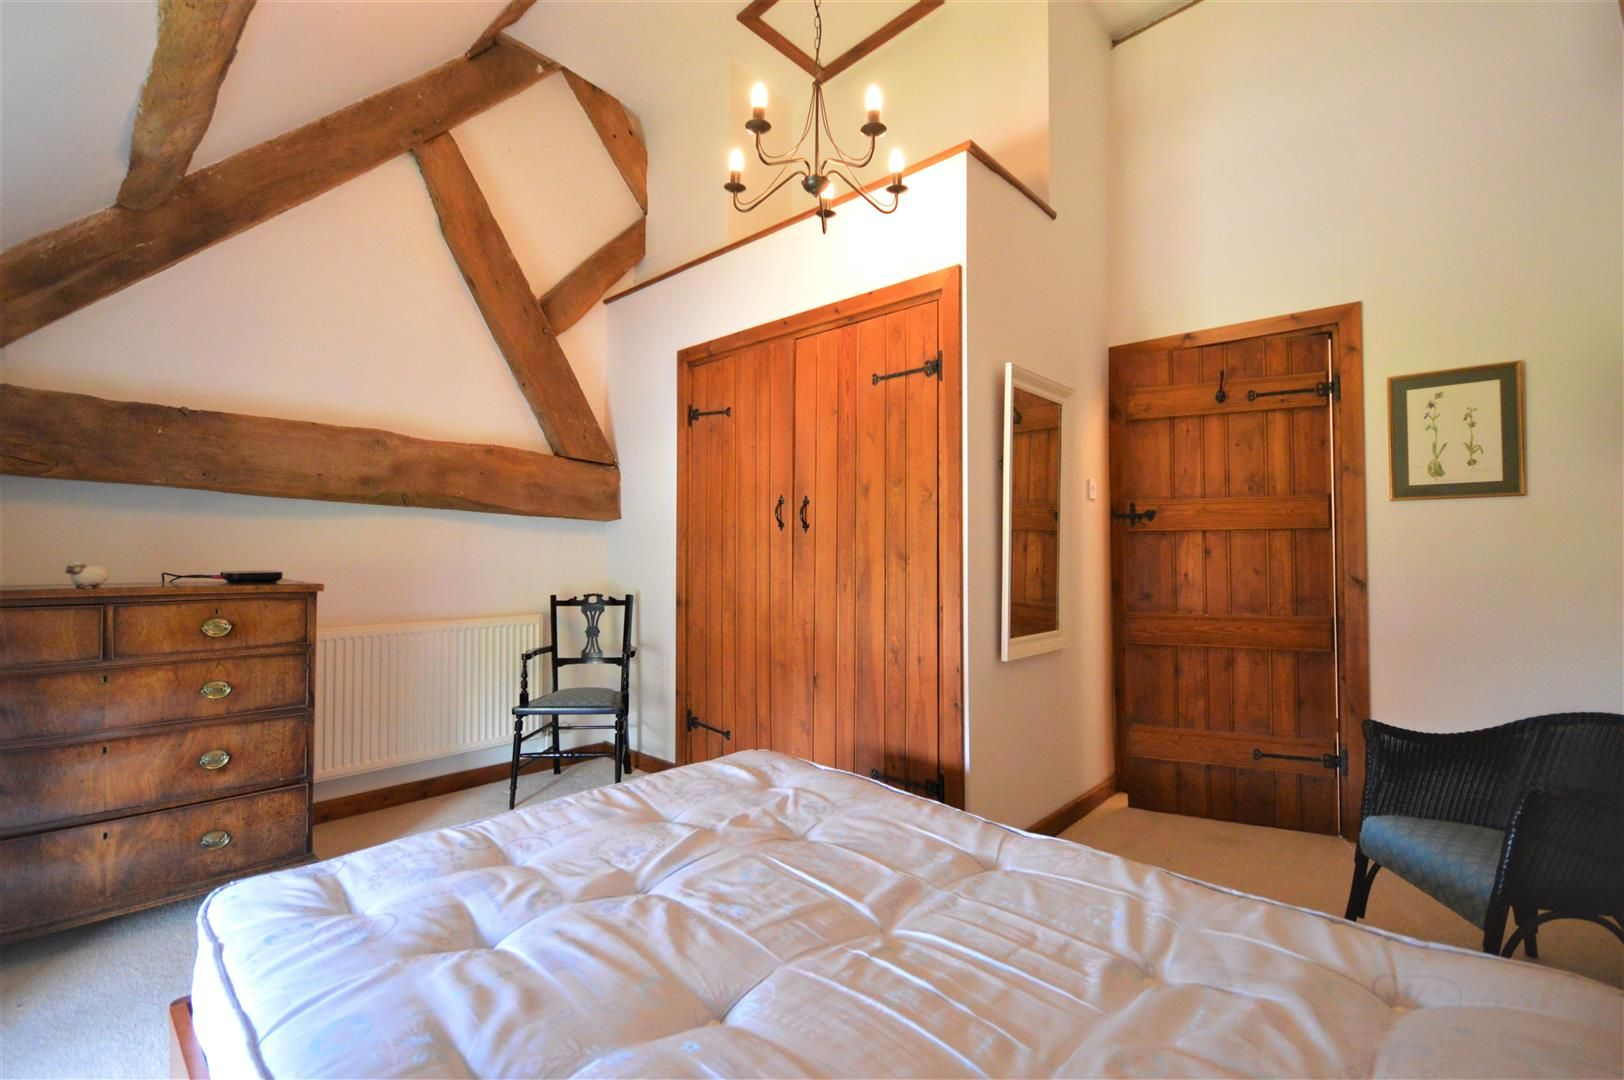 3 bed barn-conversion for sale in Stoke Prior  - Property Image 15